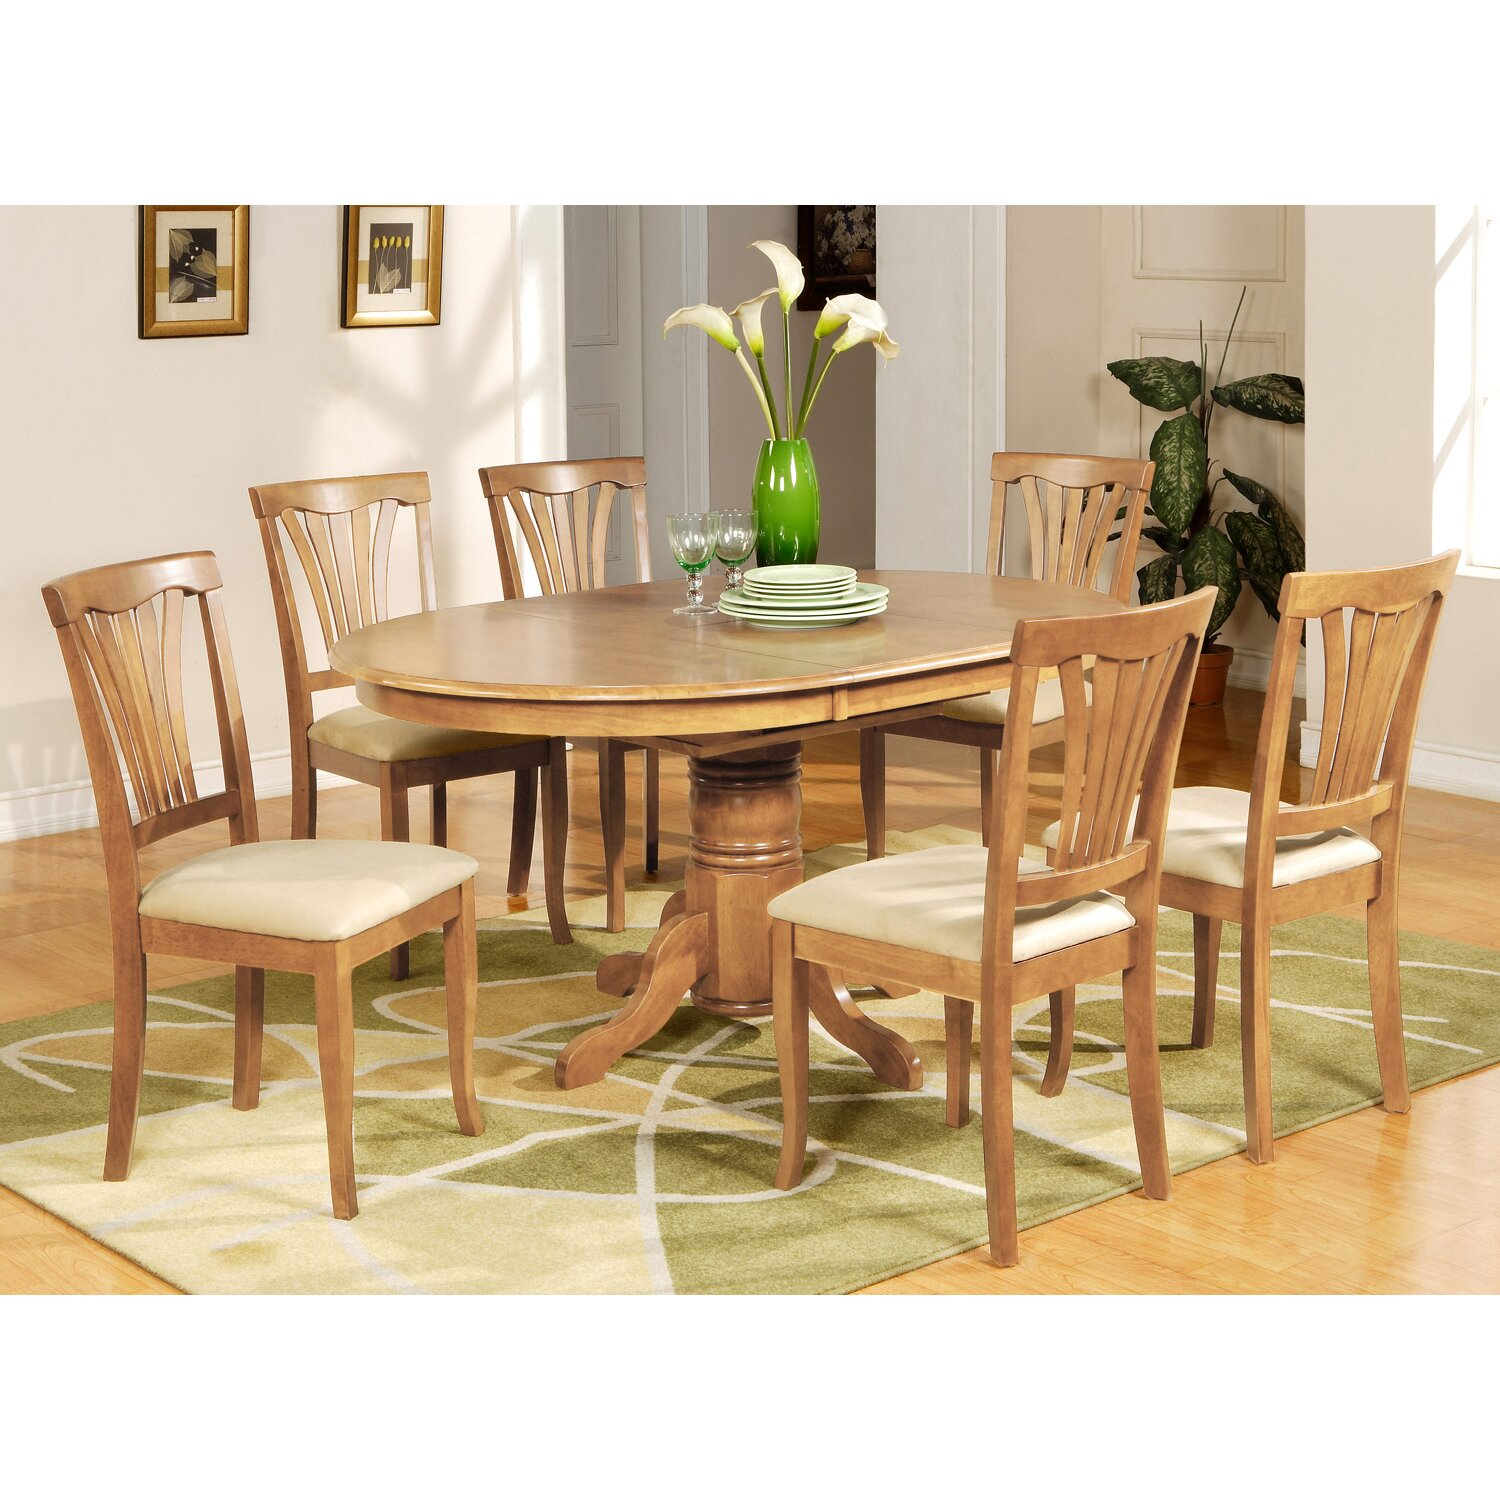 Wooden importers avon 7 piece dining set reviews wayfair for Furniture 7 reviews